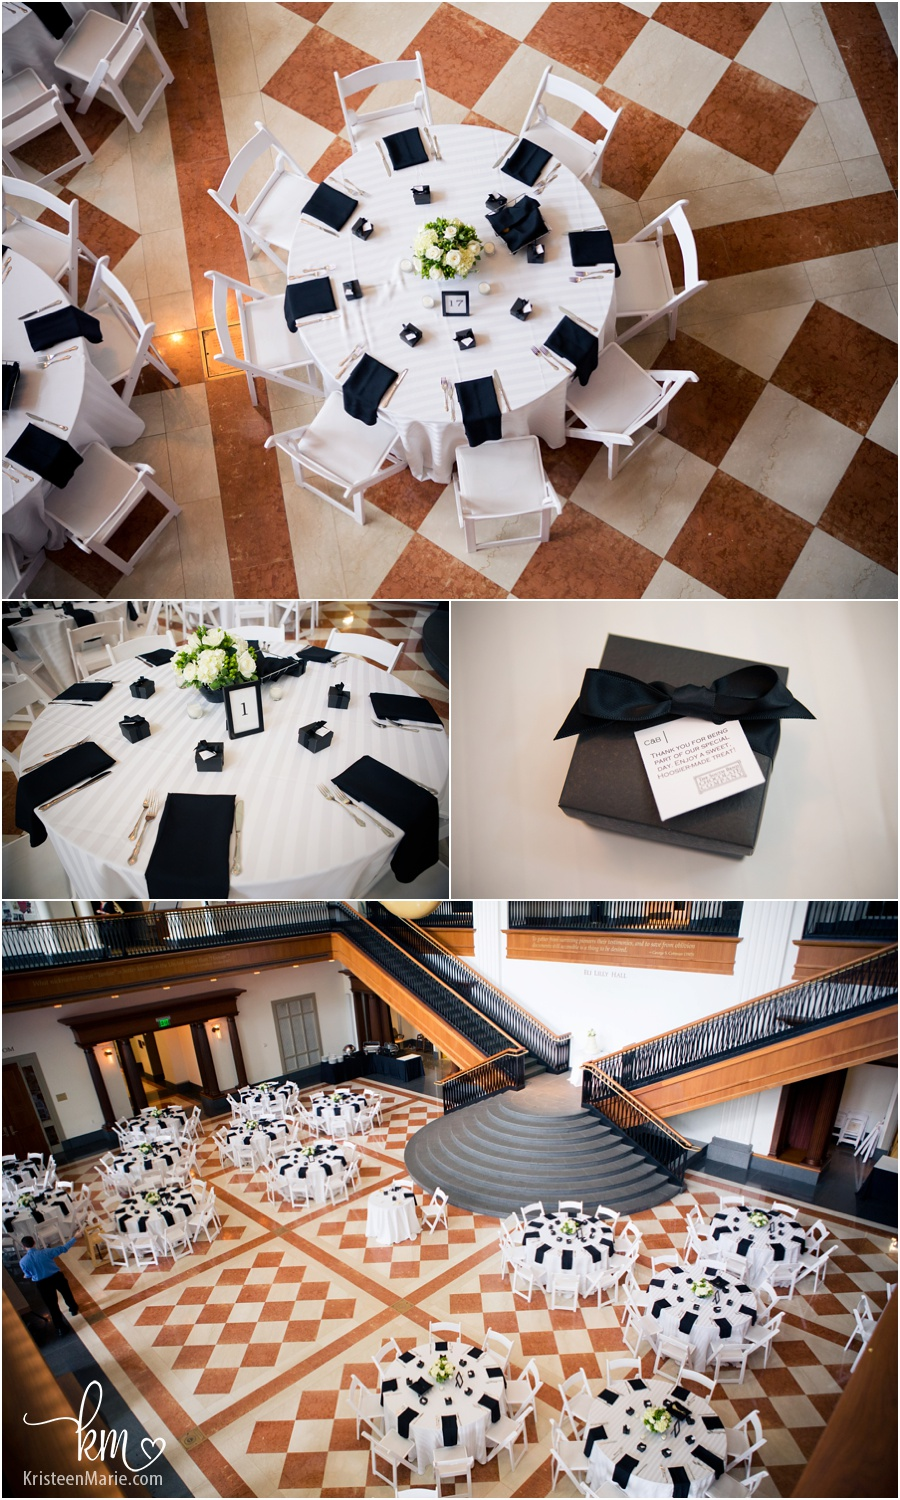 The wedding setup at the Indiana History Center in Indianapolis, IN